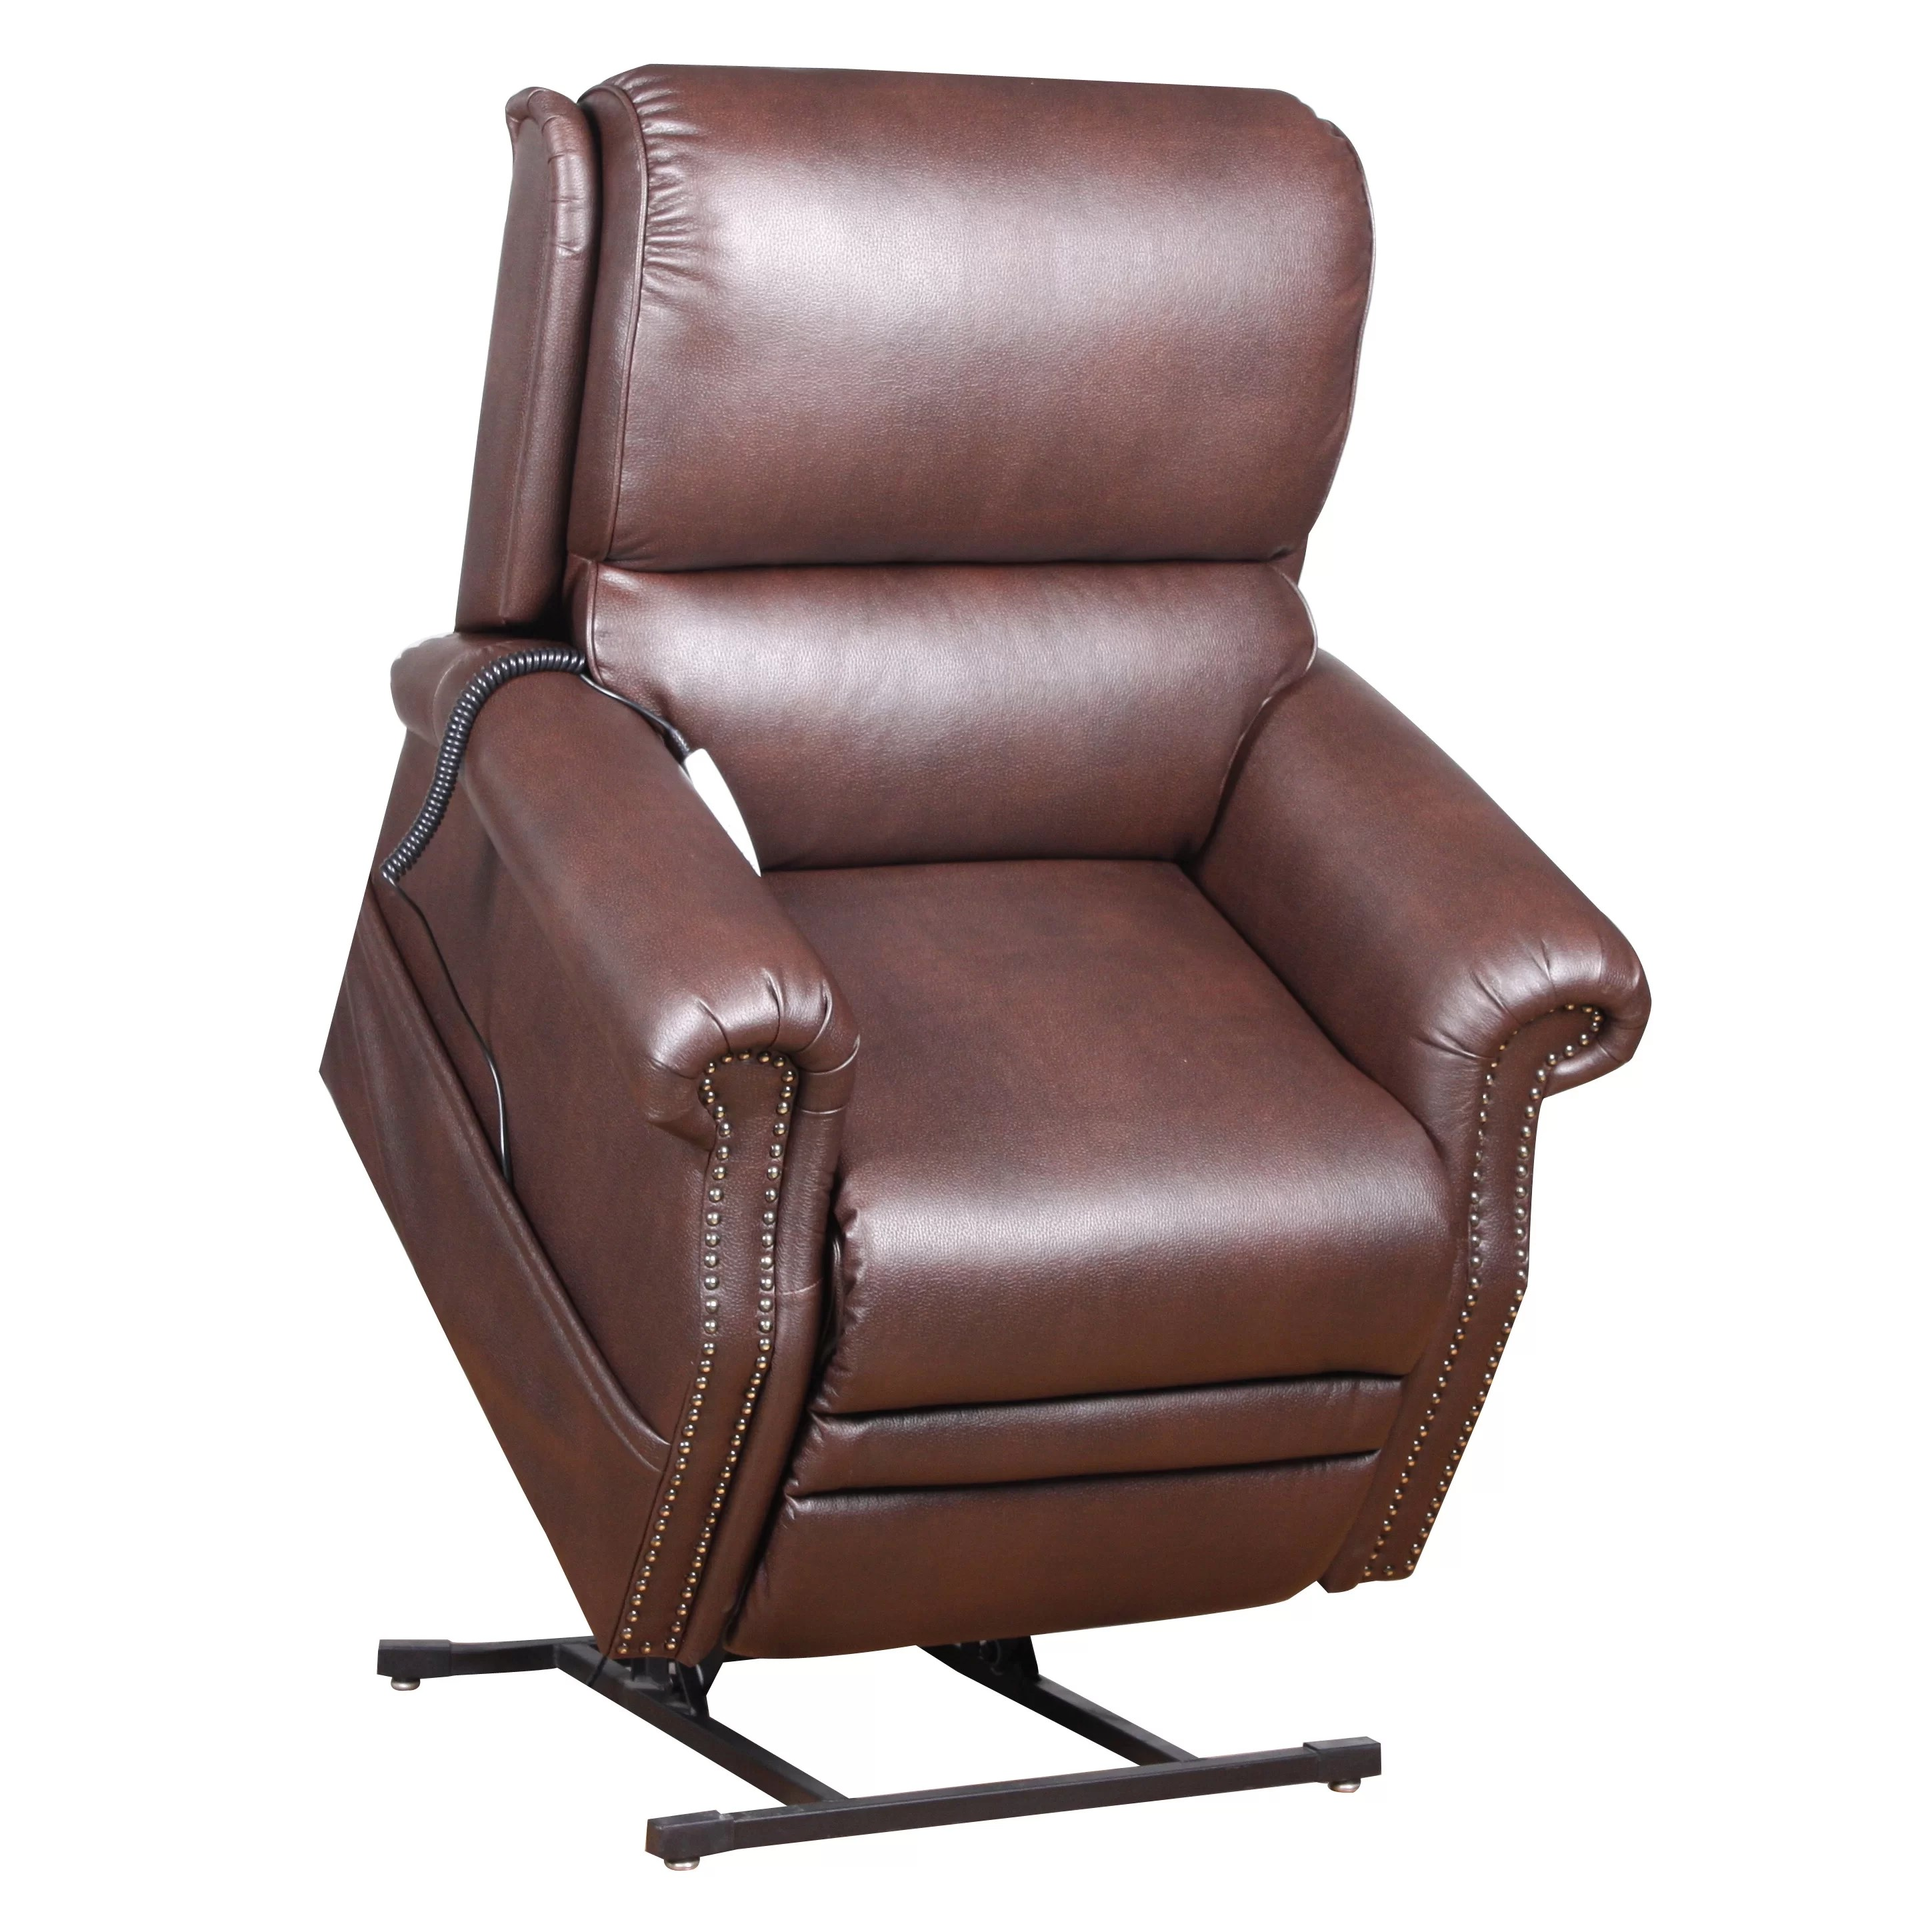 Electric Lift Chairs Serta Lift Chairs Sheffield Power Lift Recliner And Reviews